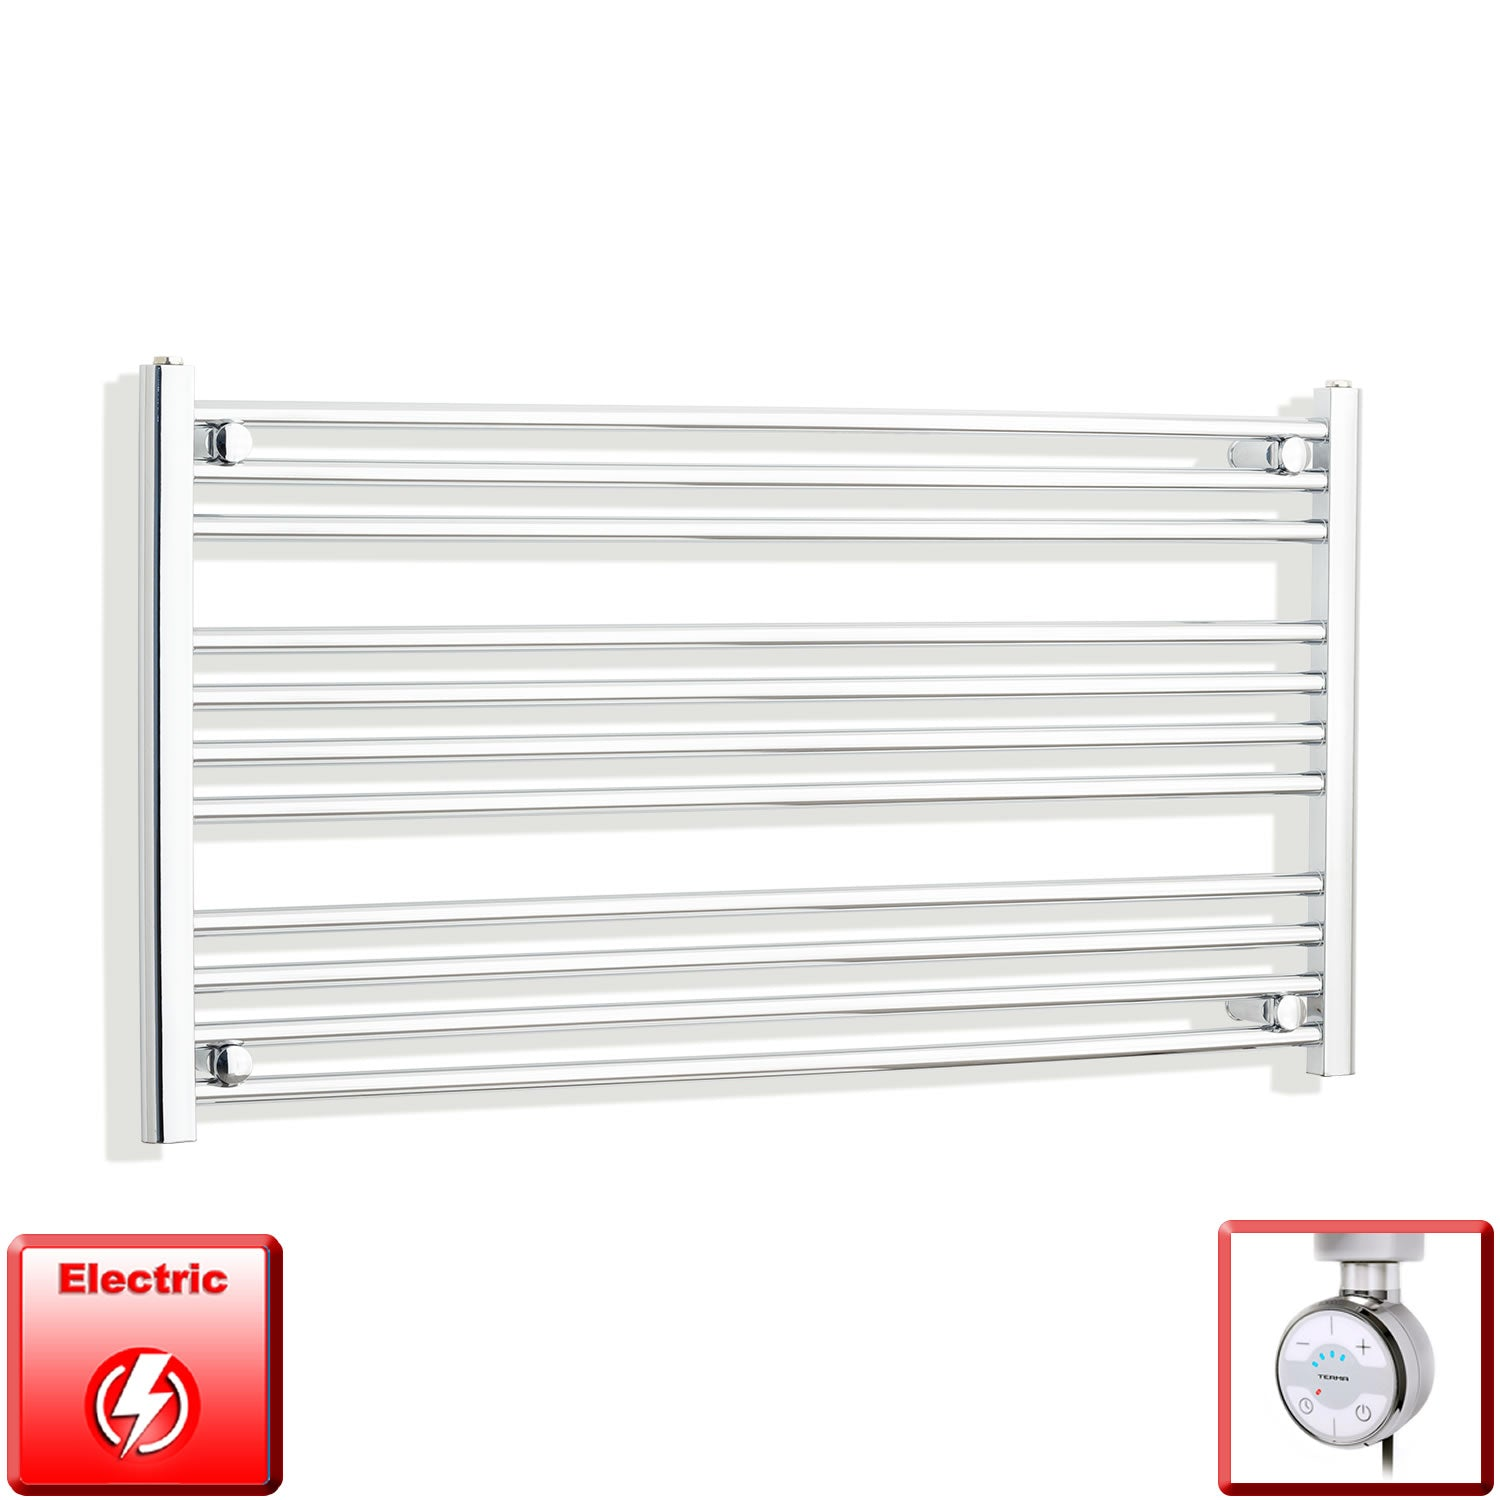 1000mm Wide 600mm High Pre-Filled Chrome Electric Towel Rail Radiator With Thermostatic MOA Element